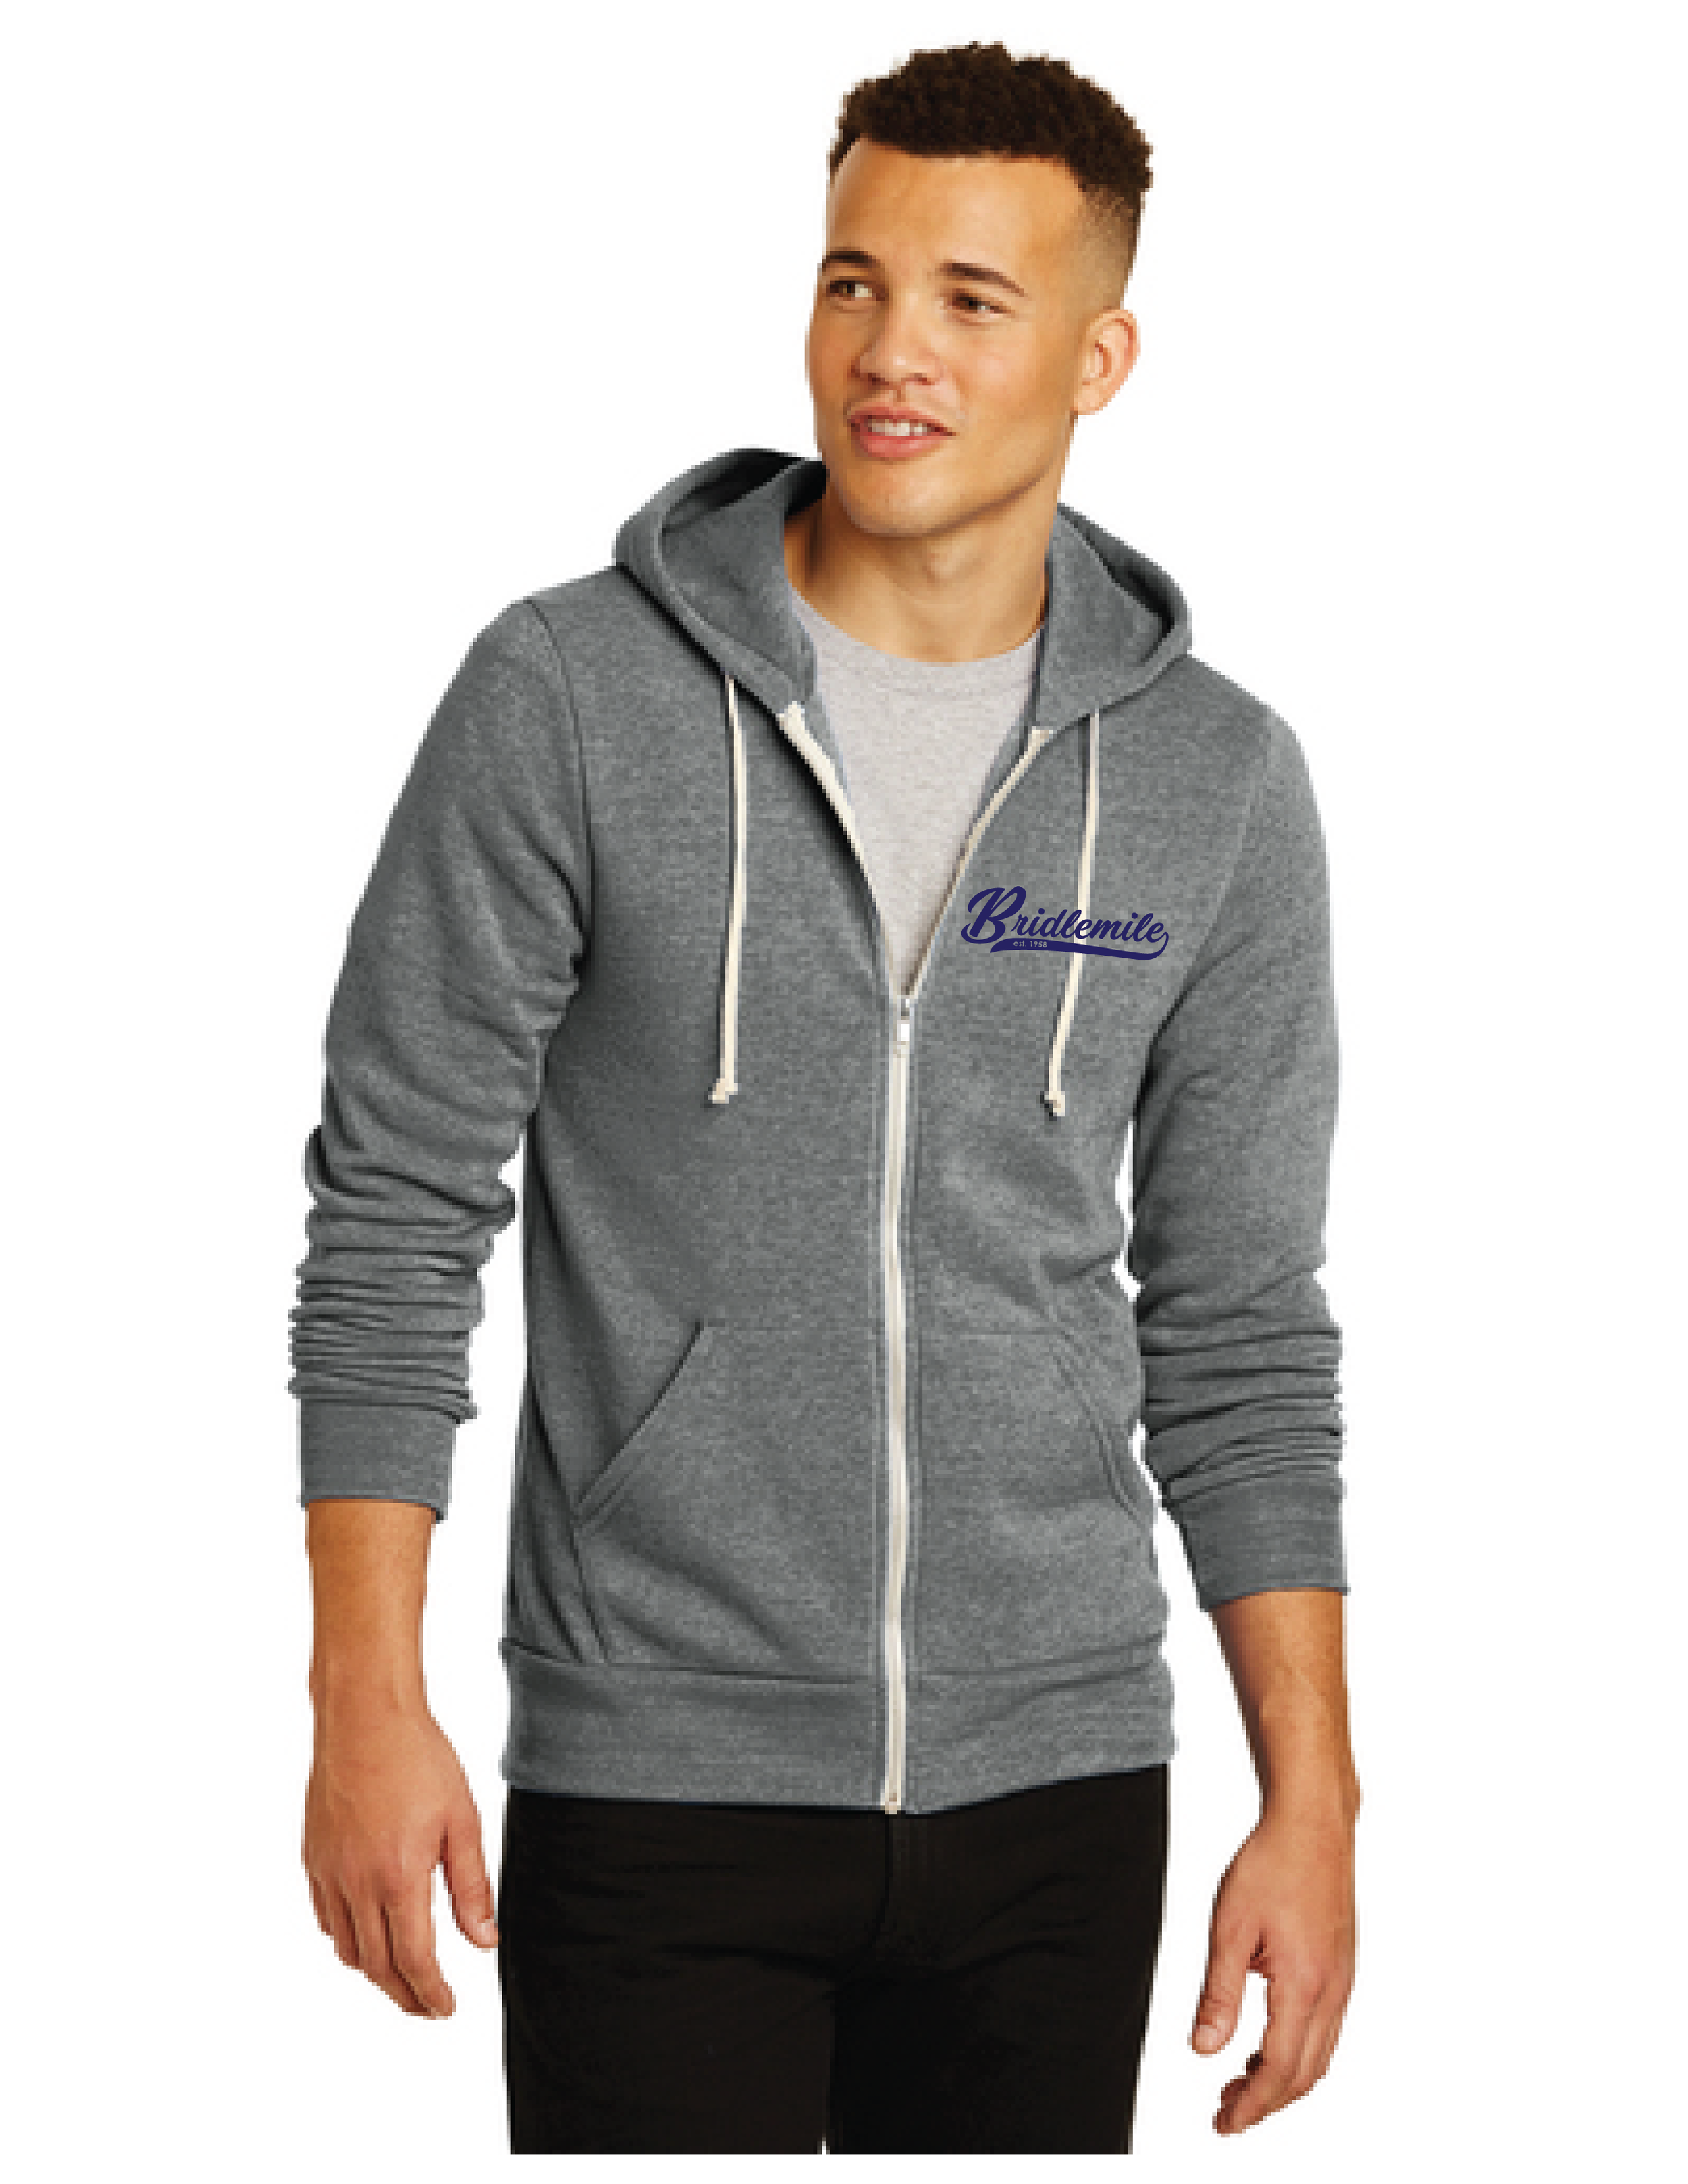 Bridlemile 60th Anniversary Designs_60th Embroidered Zip Mens.png